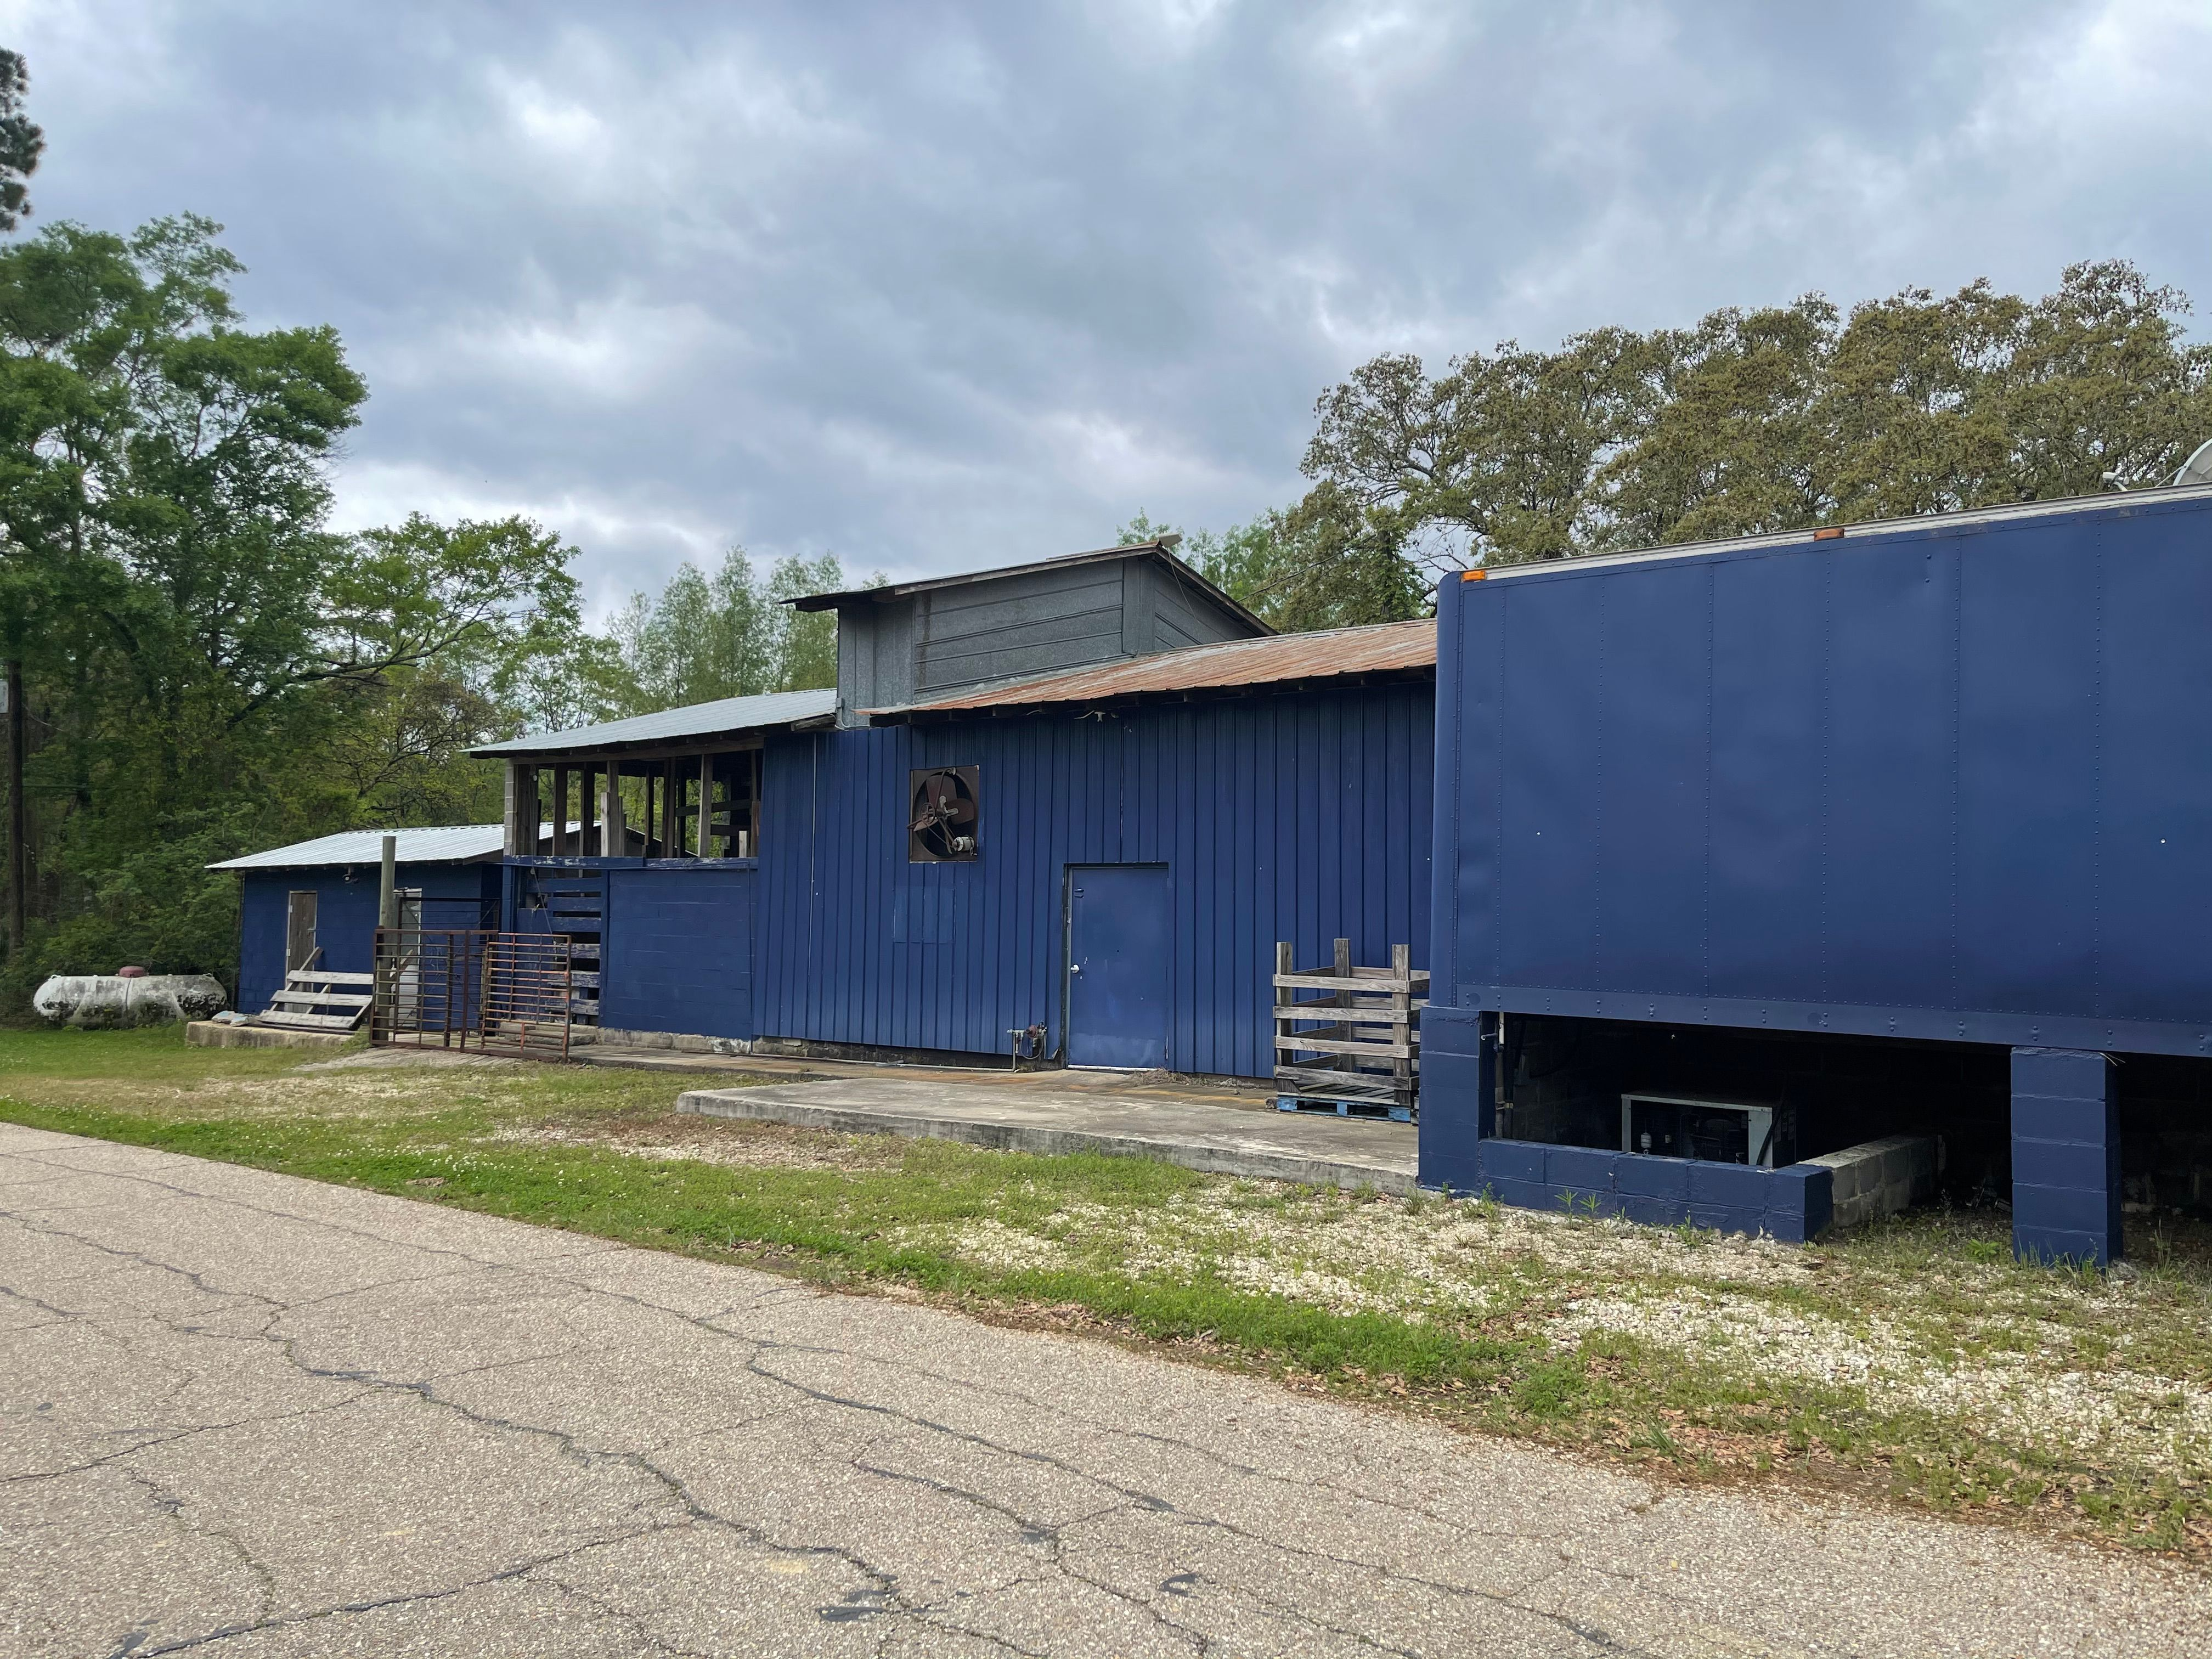 27544 Patterson Rd (Image - 1)